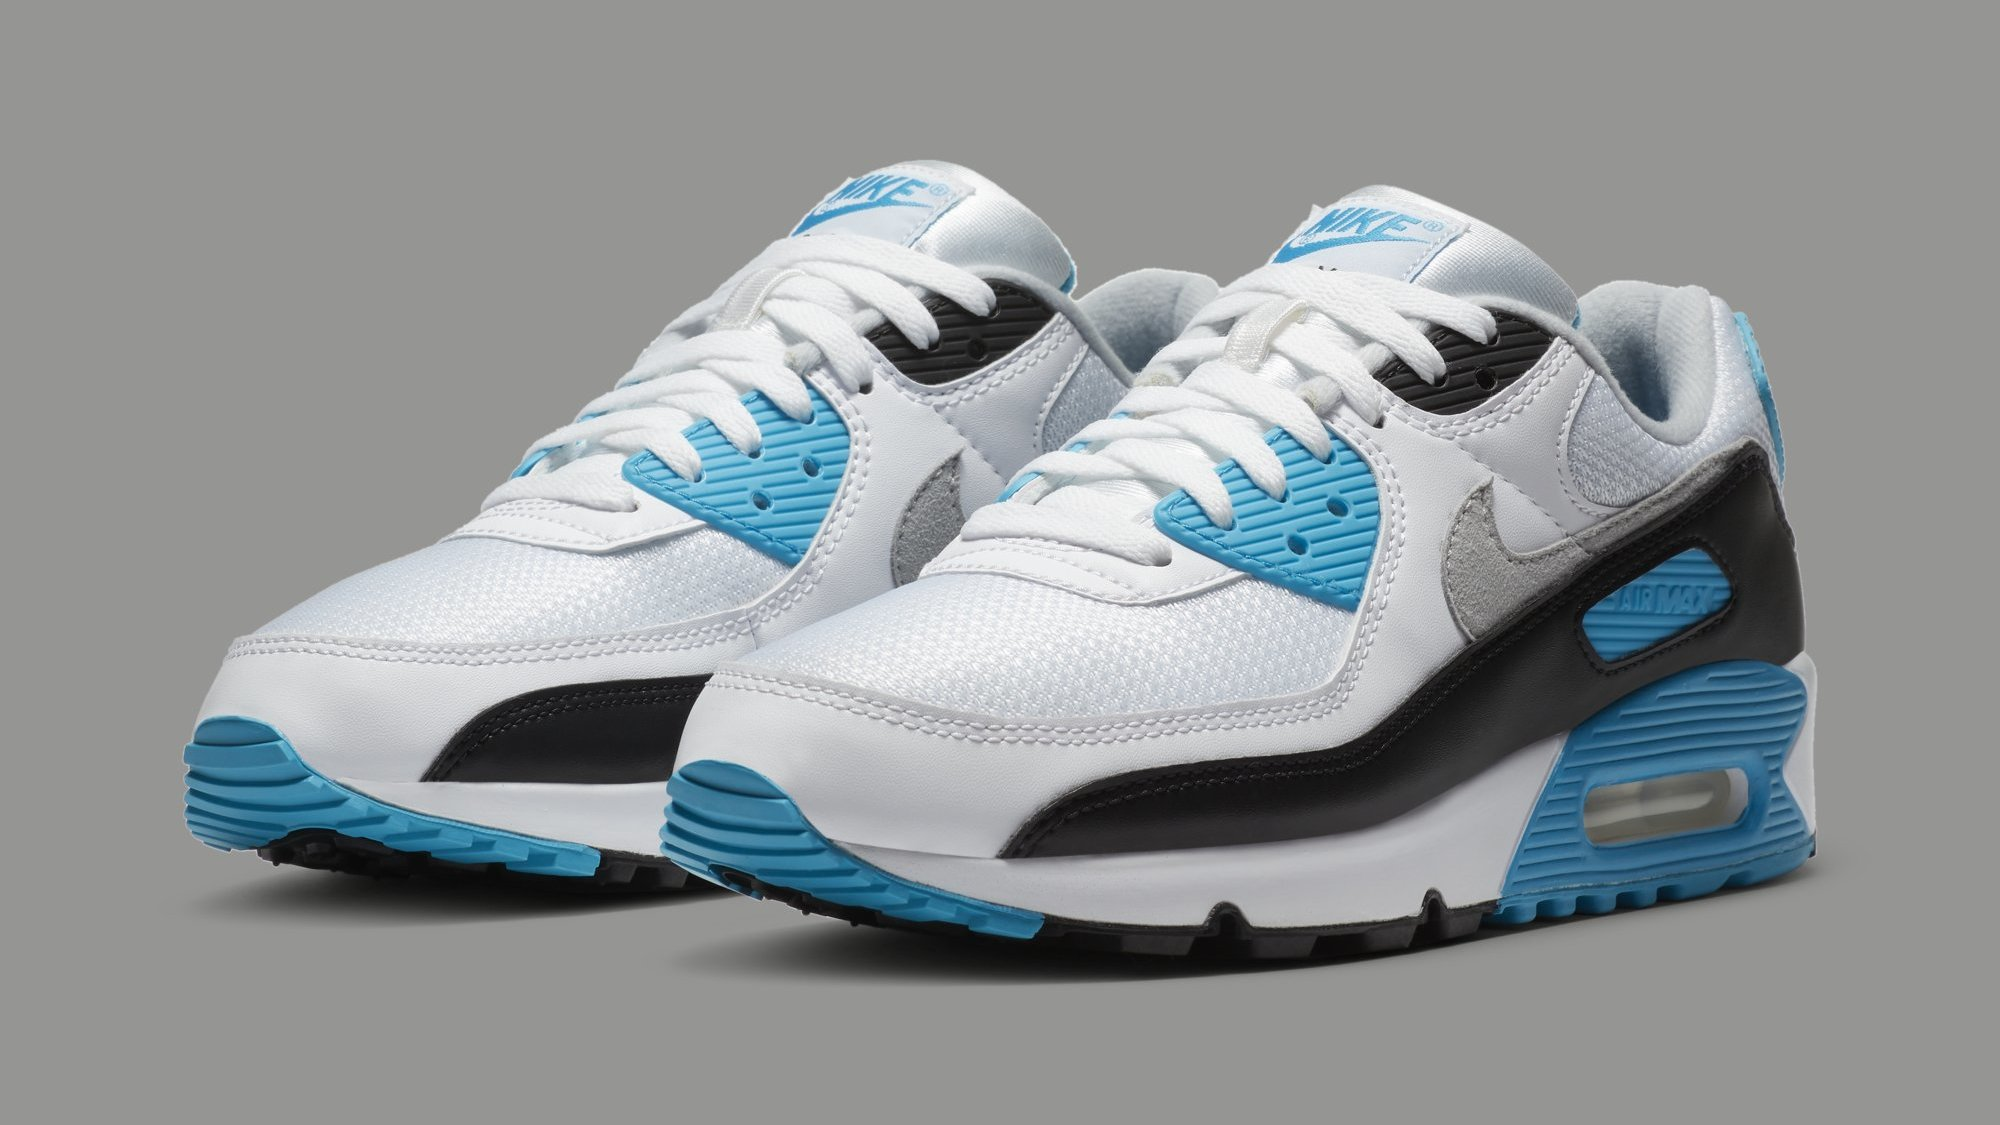 Nike Air Max 90 'Laser Blue' 2020 Release Date   Sole Collector